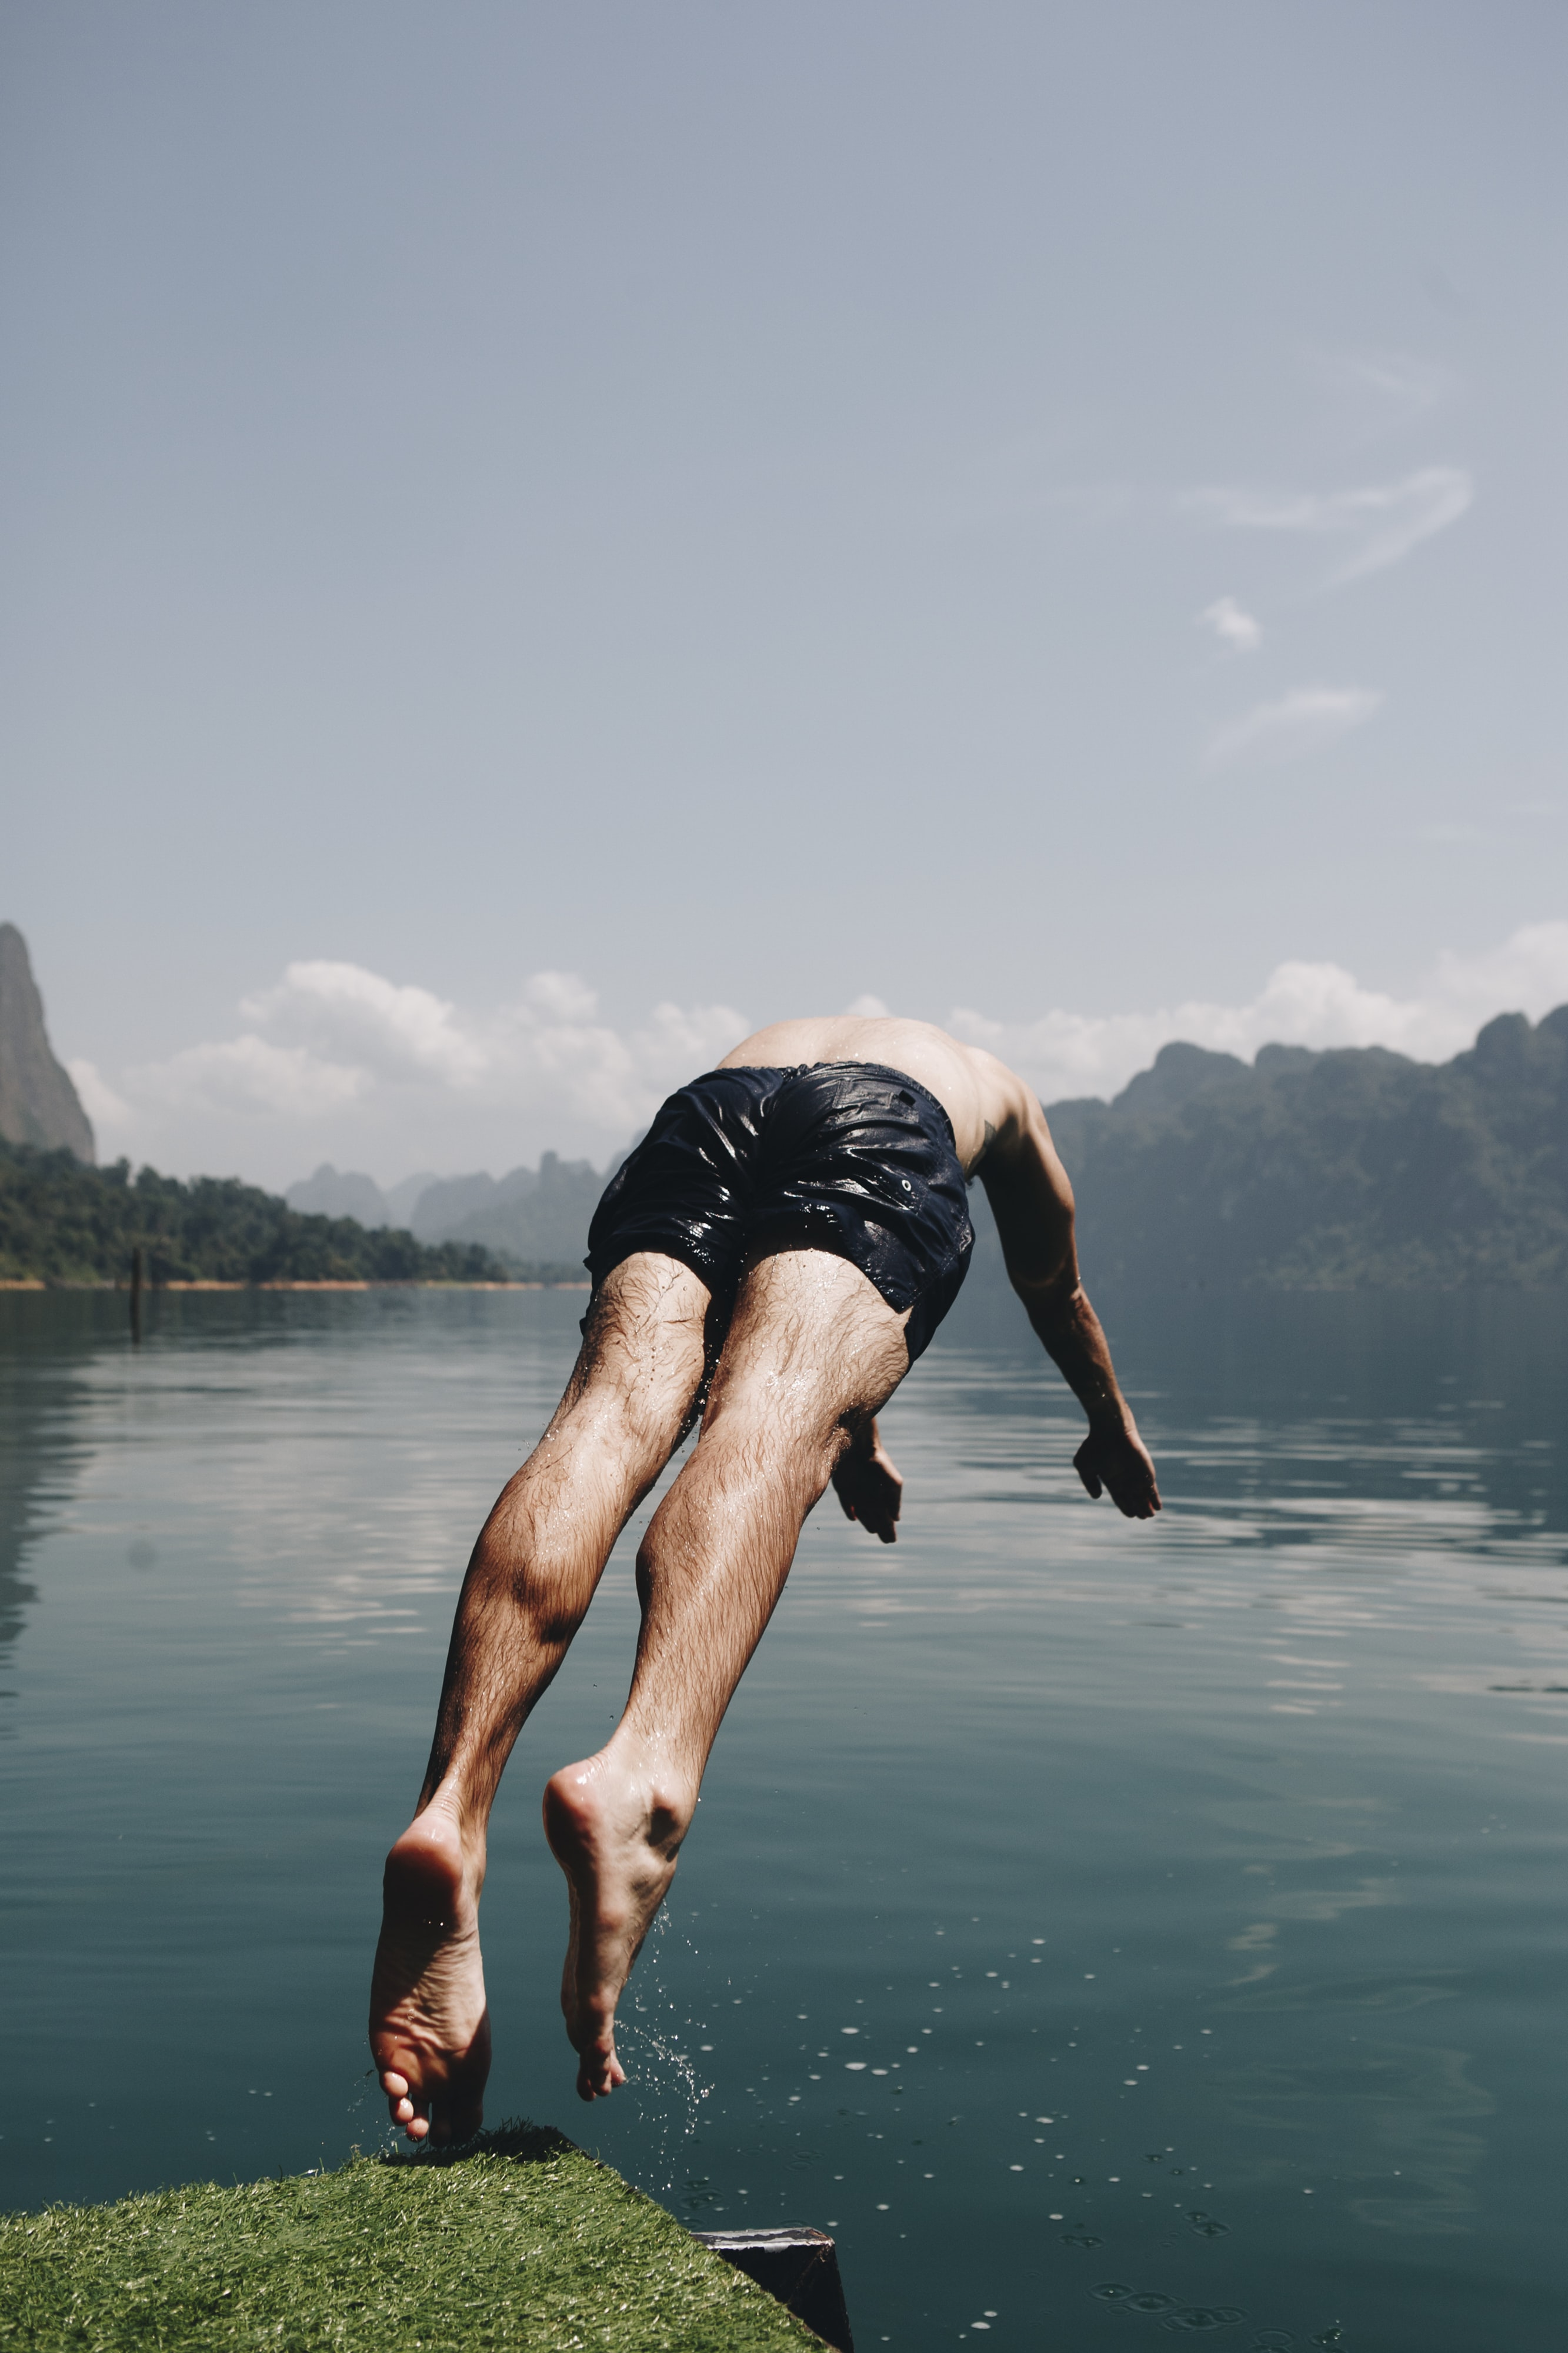 man diving on body of water